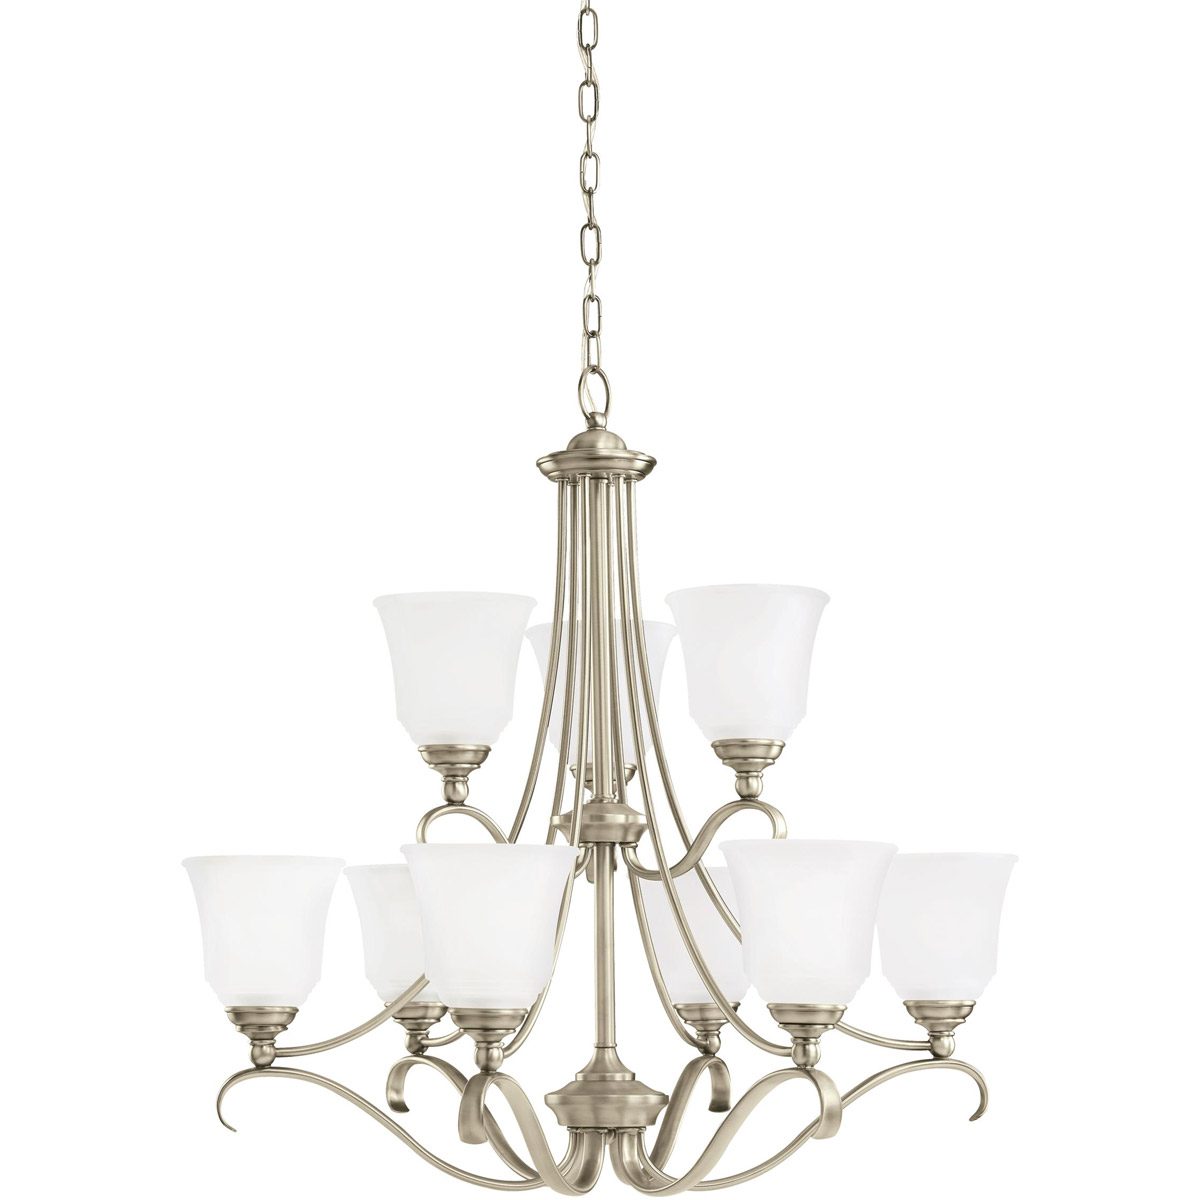 Sea Gull 31381-965 Parkview 9 Light 31 inch Antique Brushed Nickel Chandelier Ceiling Light in Satin Etched Glass photo